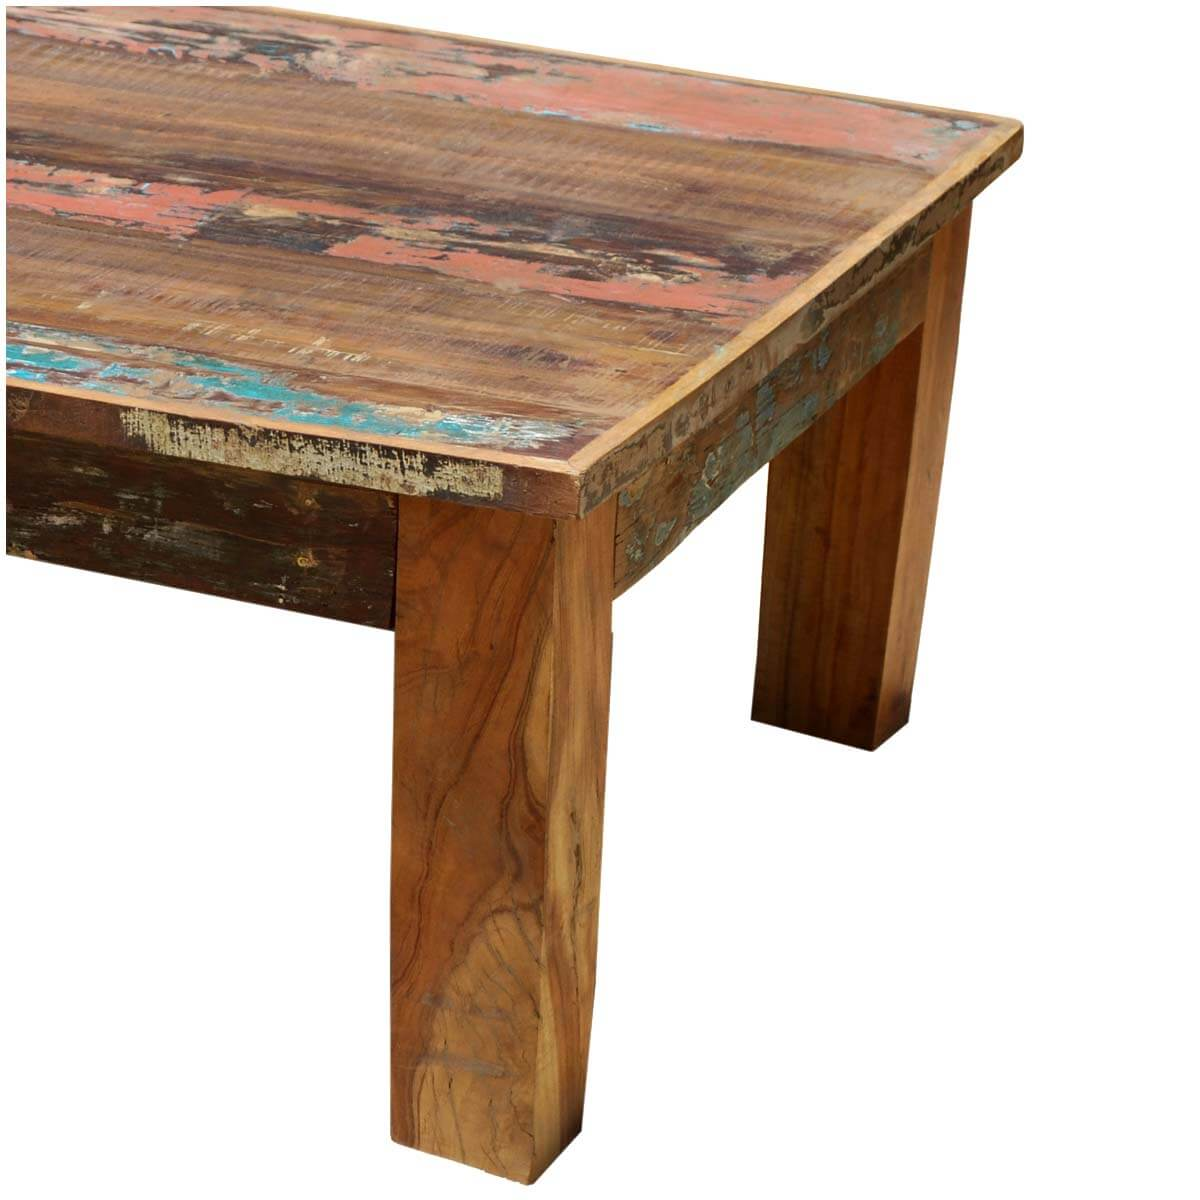 Culbertson rustic reclaimed wood rectangle coffee table